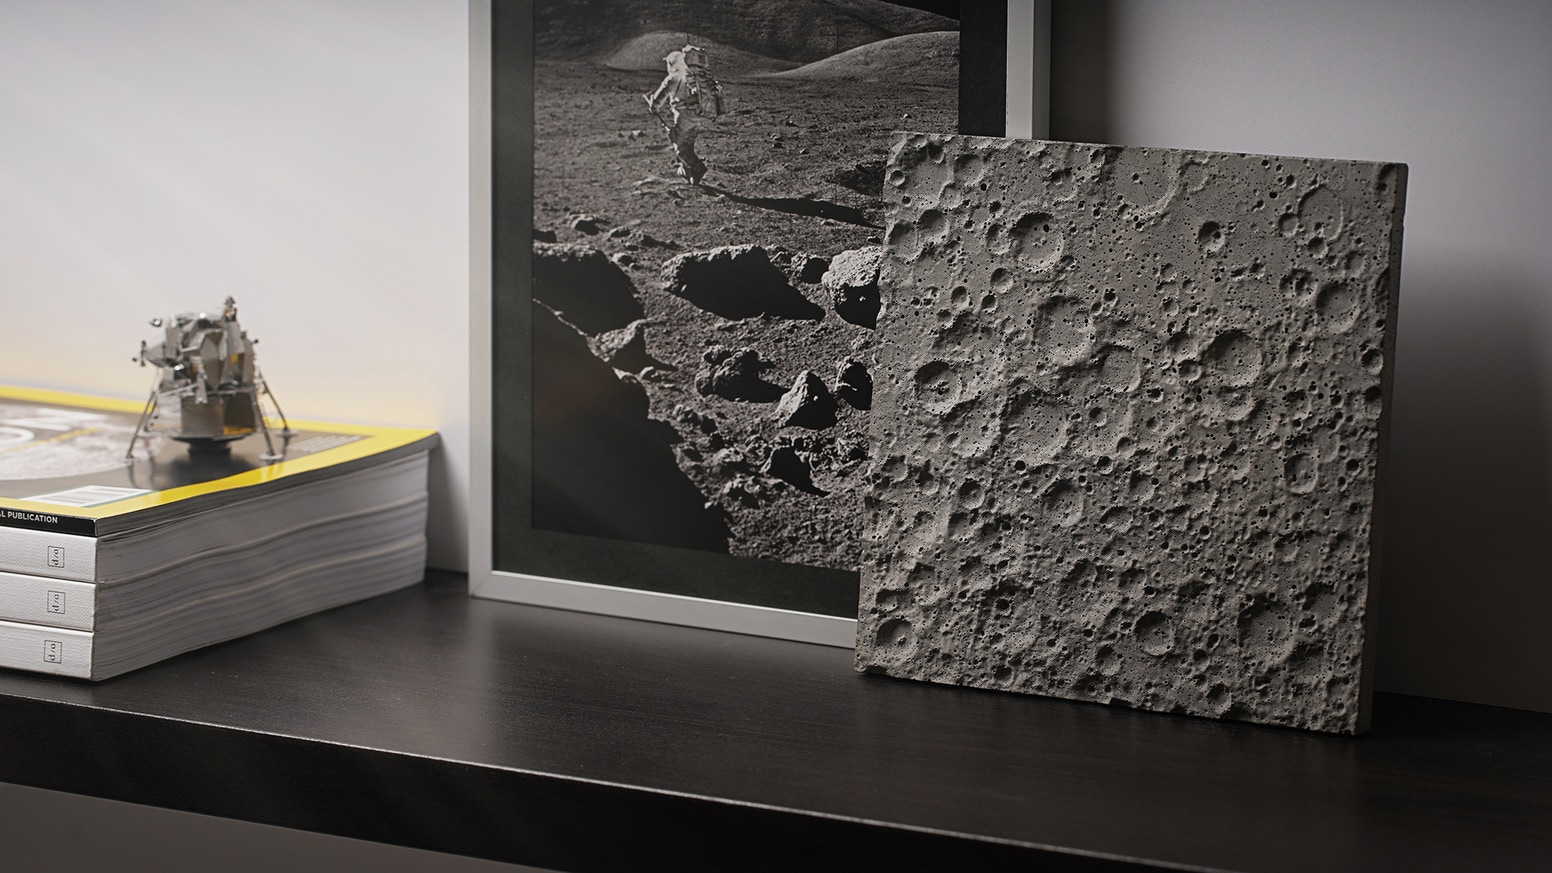 The moon has captured our hearts and imagination from the dawn of time. Now, you can bring its iconic surface down into your home.